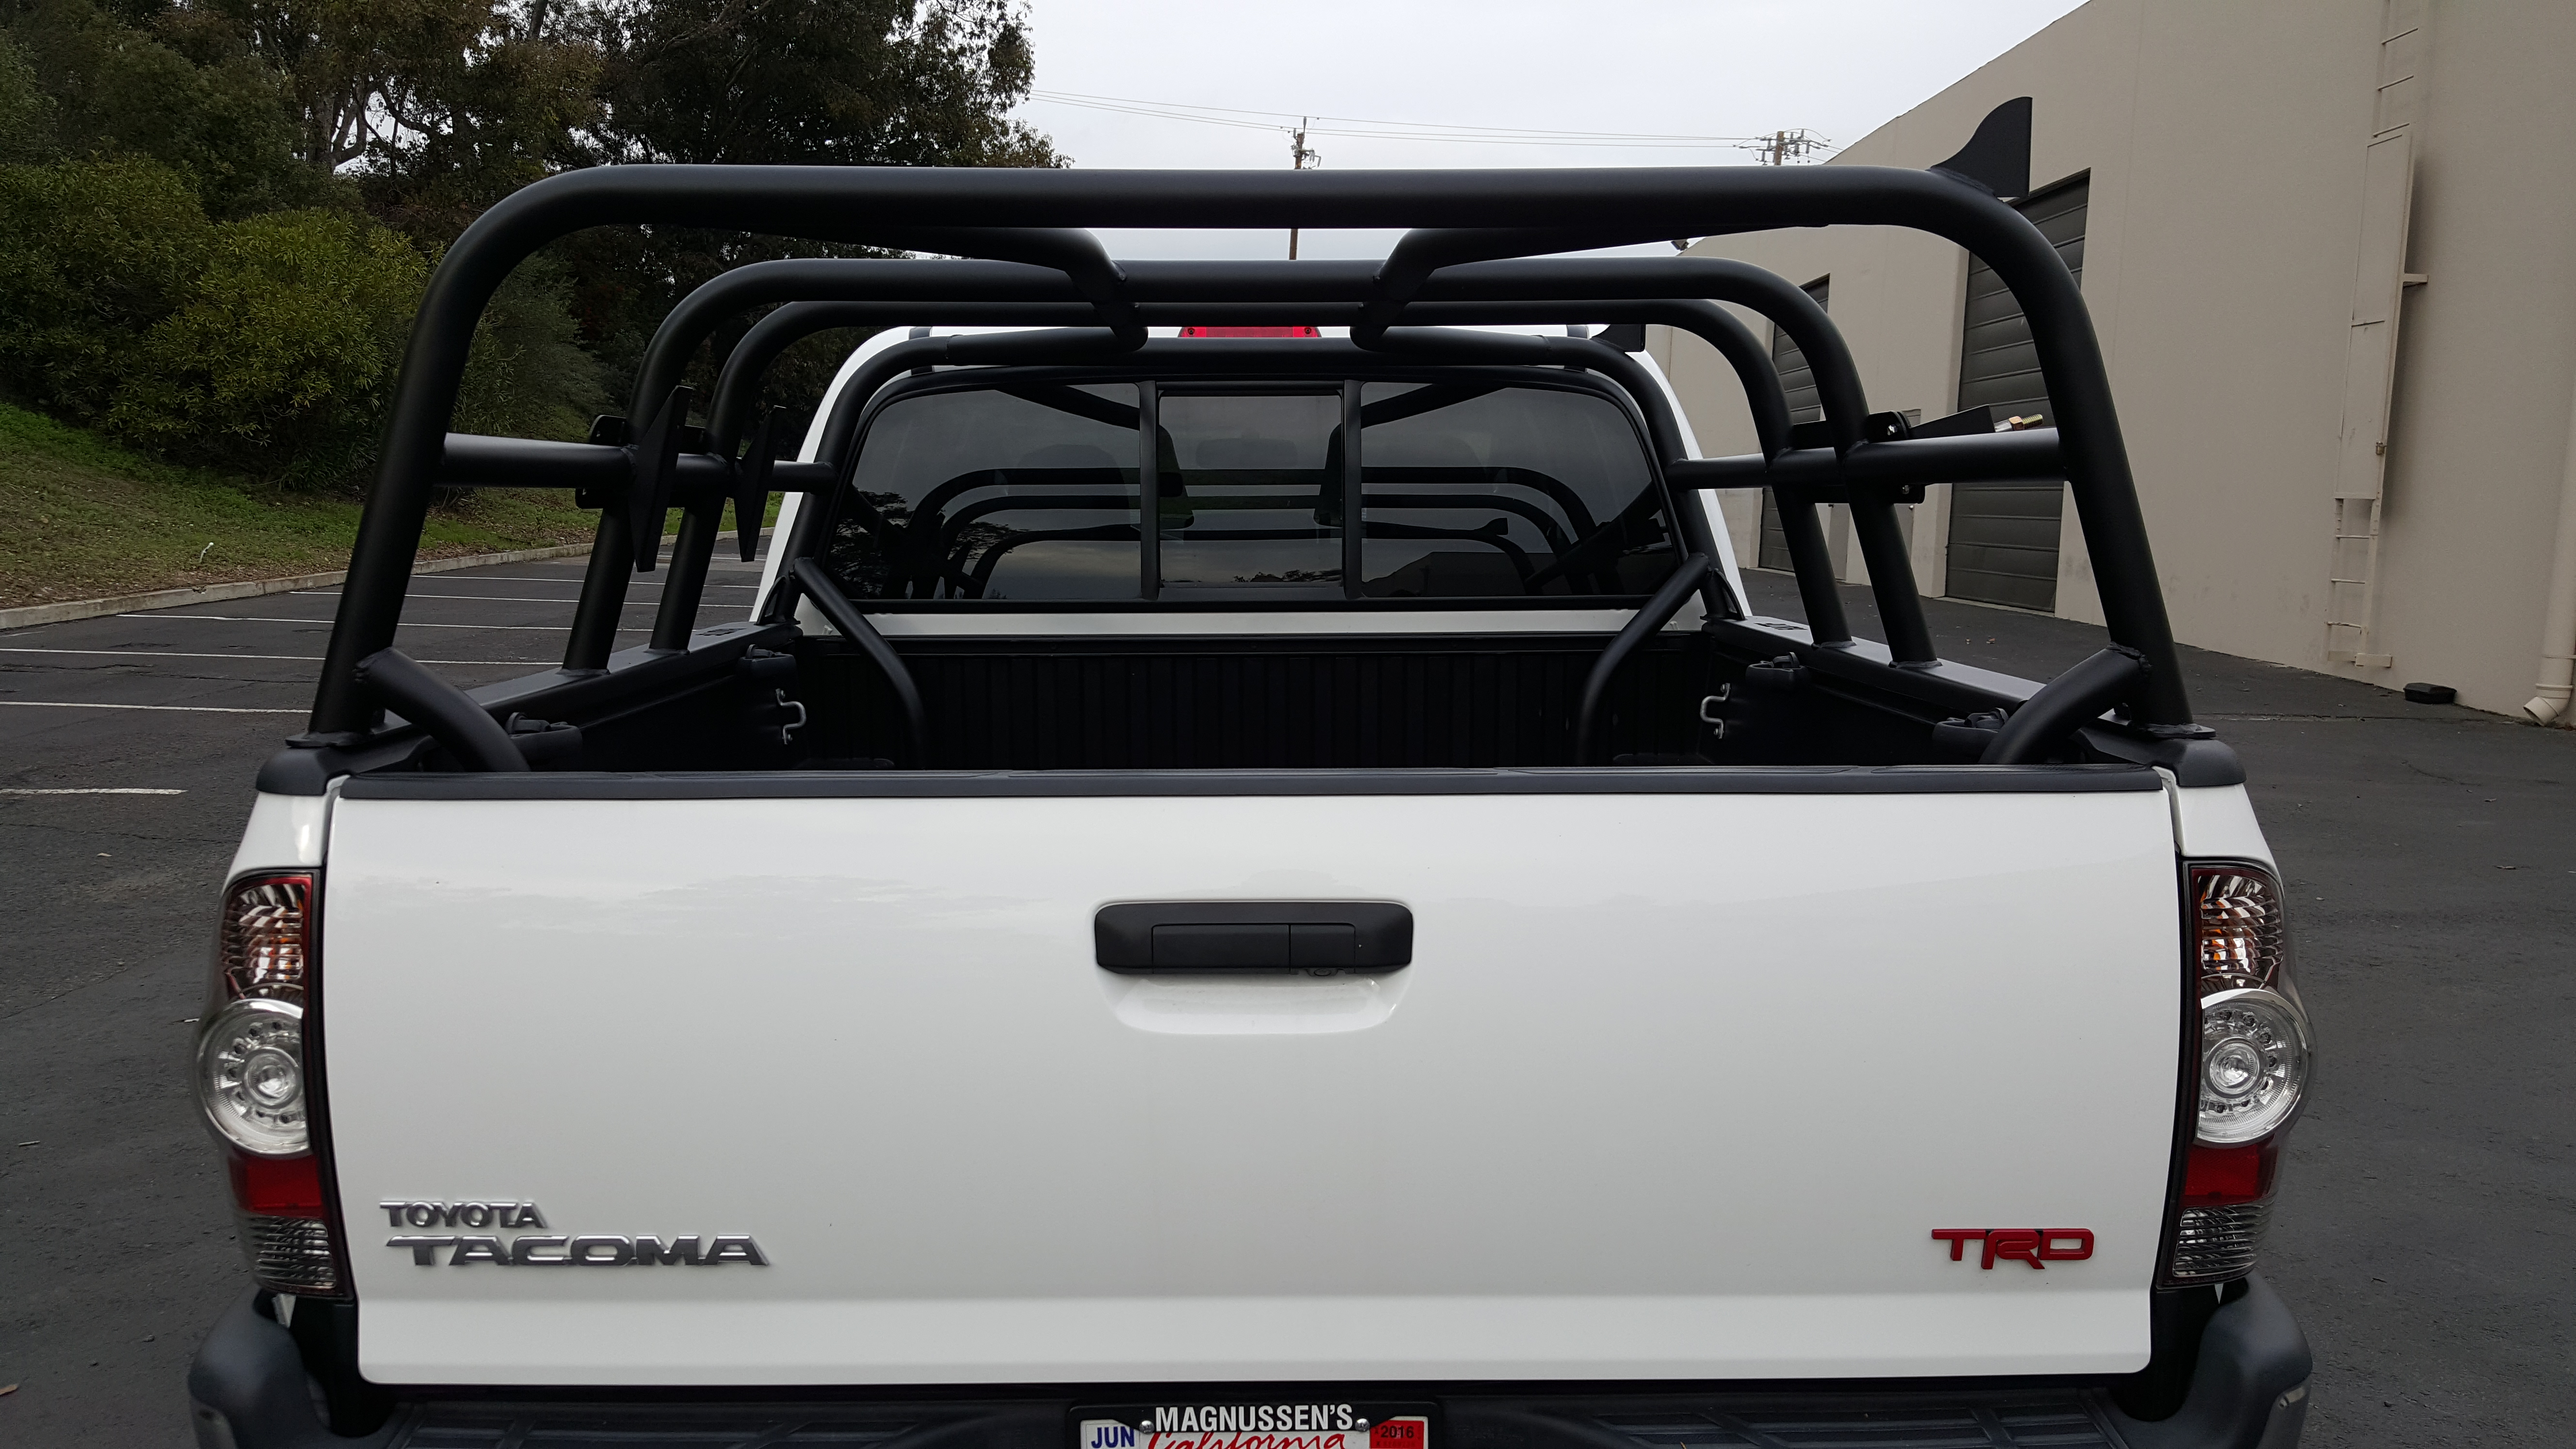 to rtt bed rack accessories p profile home low tacoma truck racks